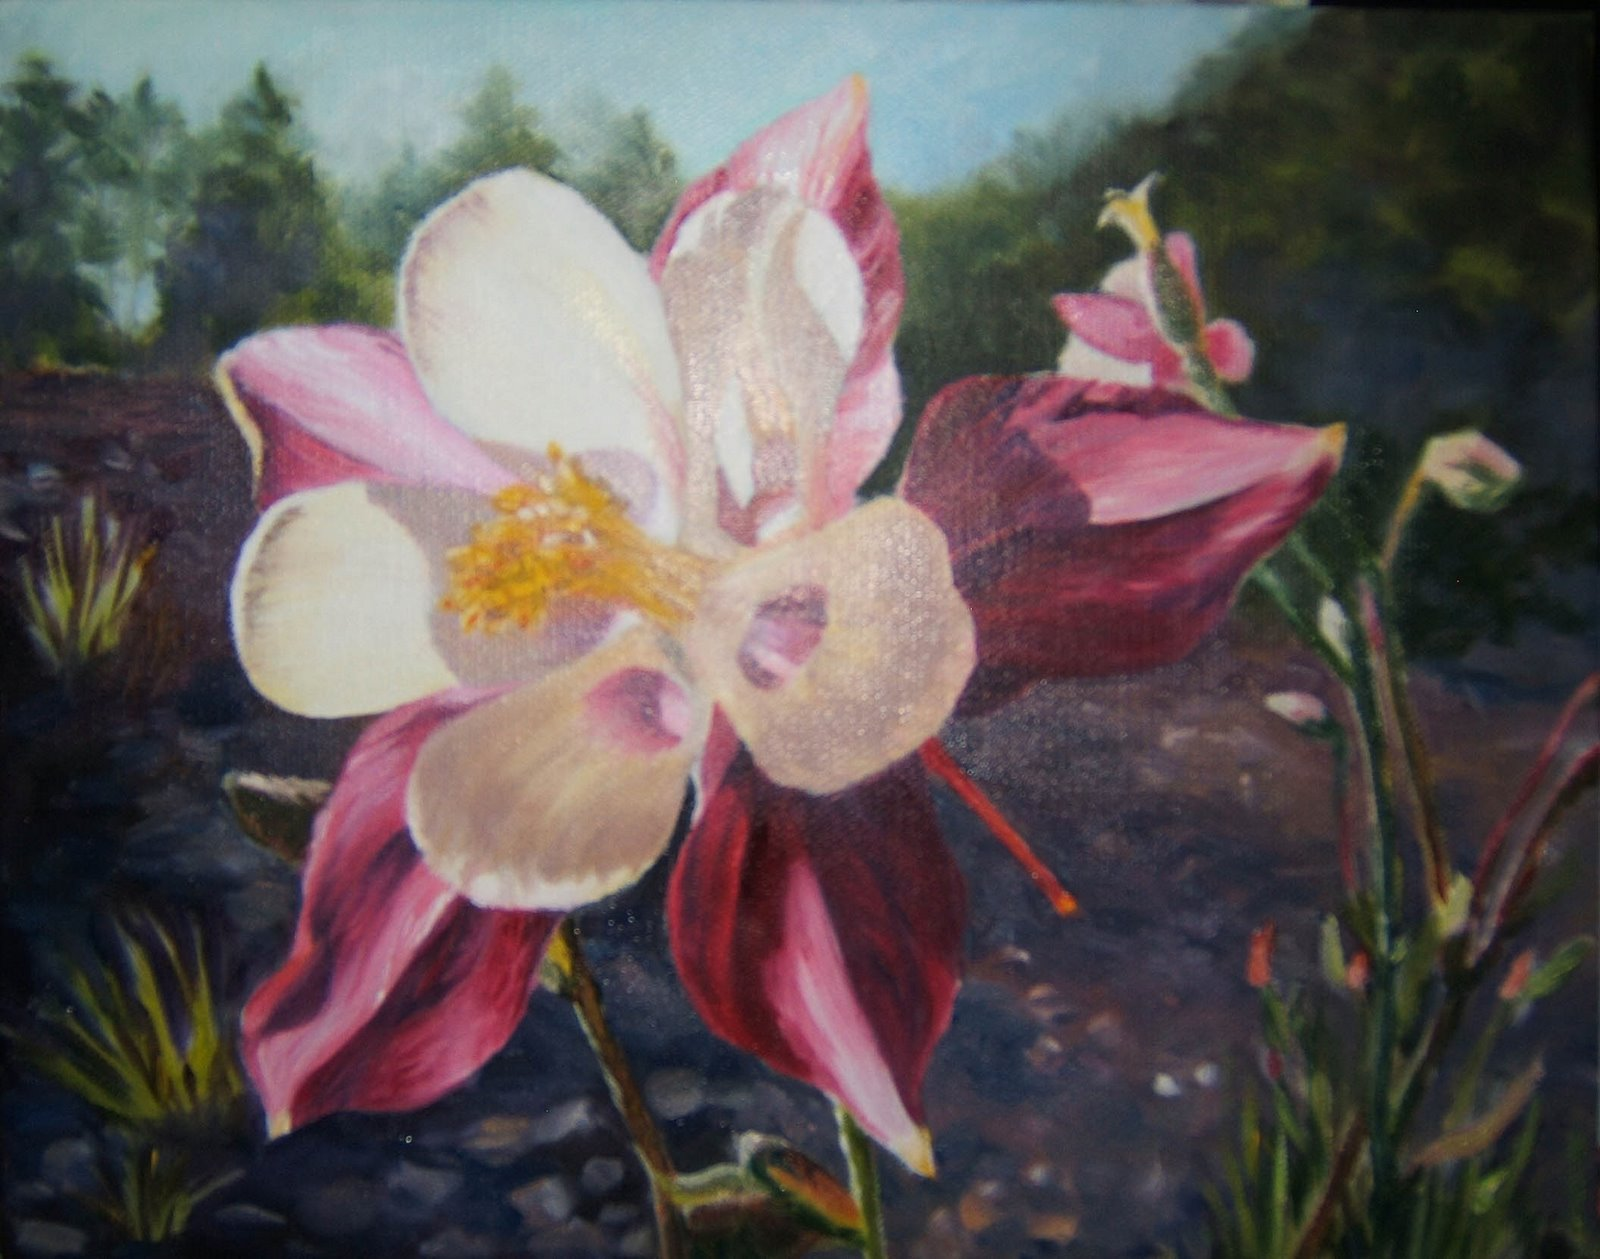 """8"""" x 10"""" oil on canvas, copyright 2009 Tina M. Welter"""